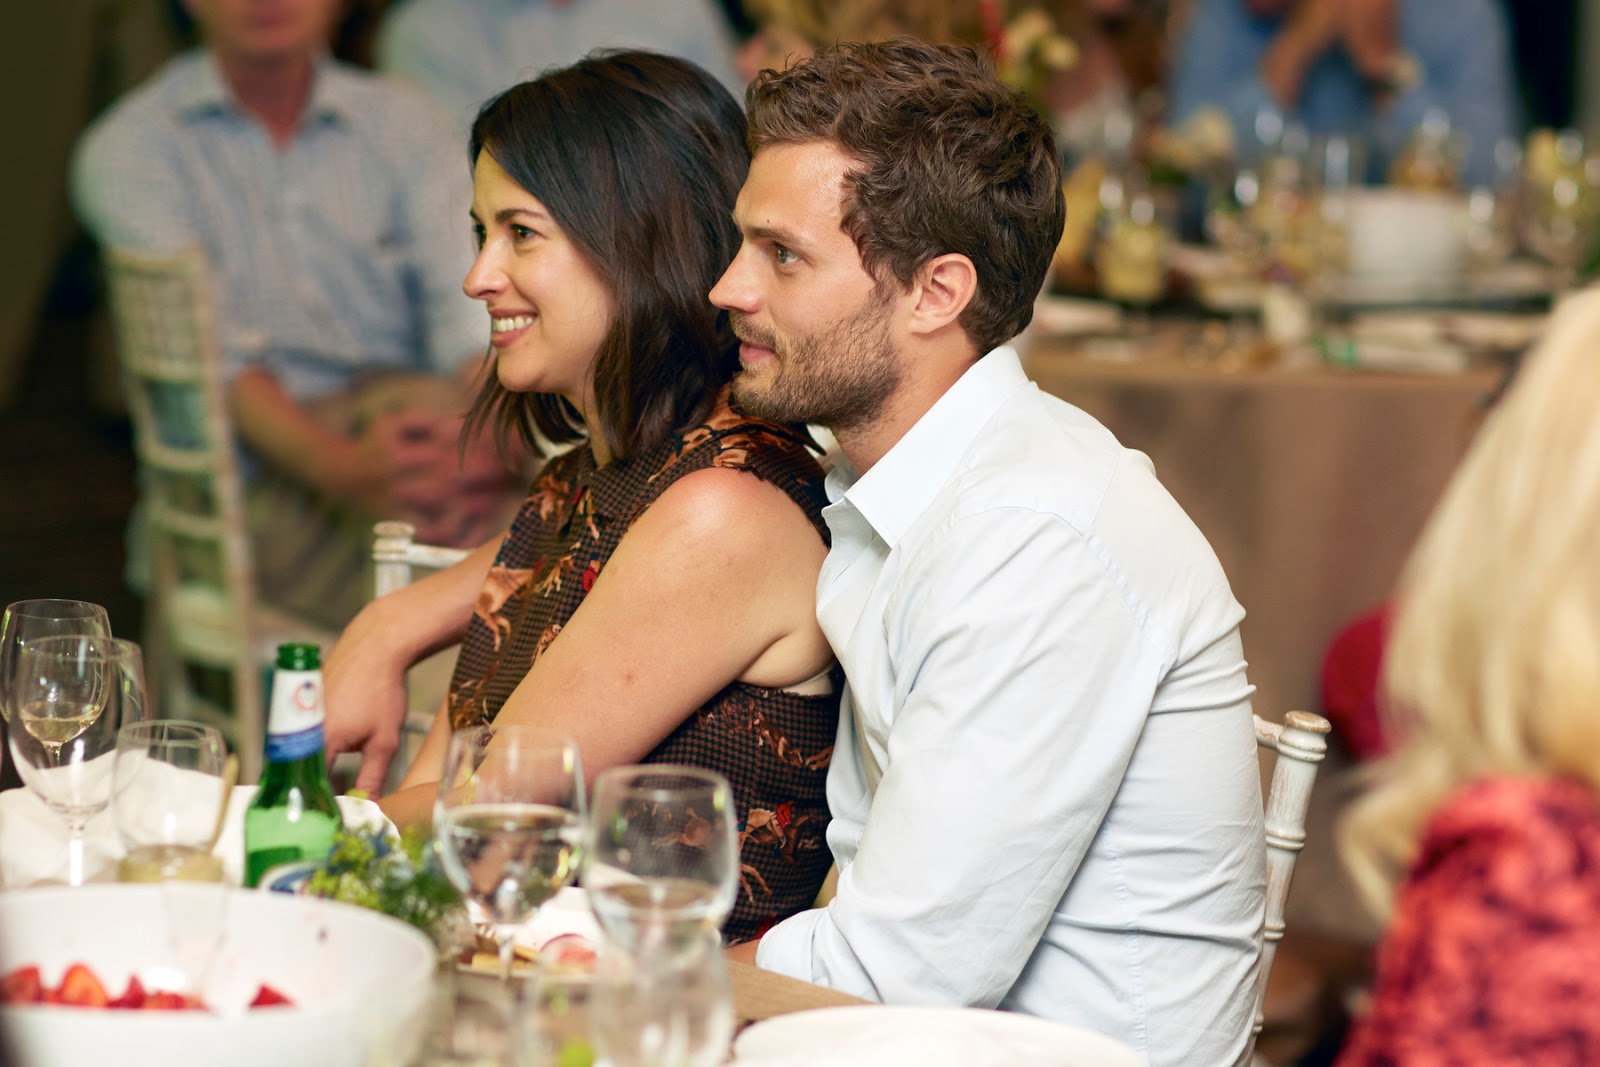 New Old Pictures Of Jamie And Amelia At Guy Ritchie S Charity Event June 2017